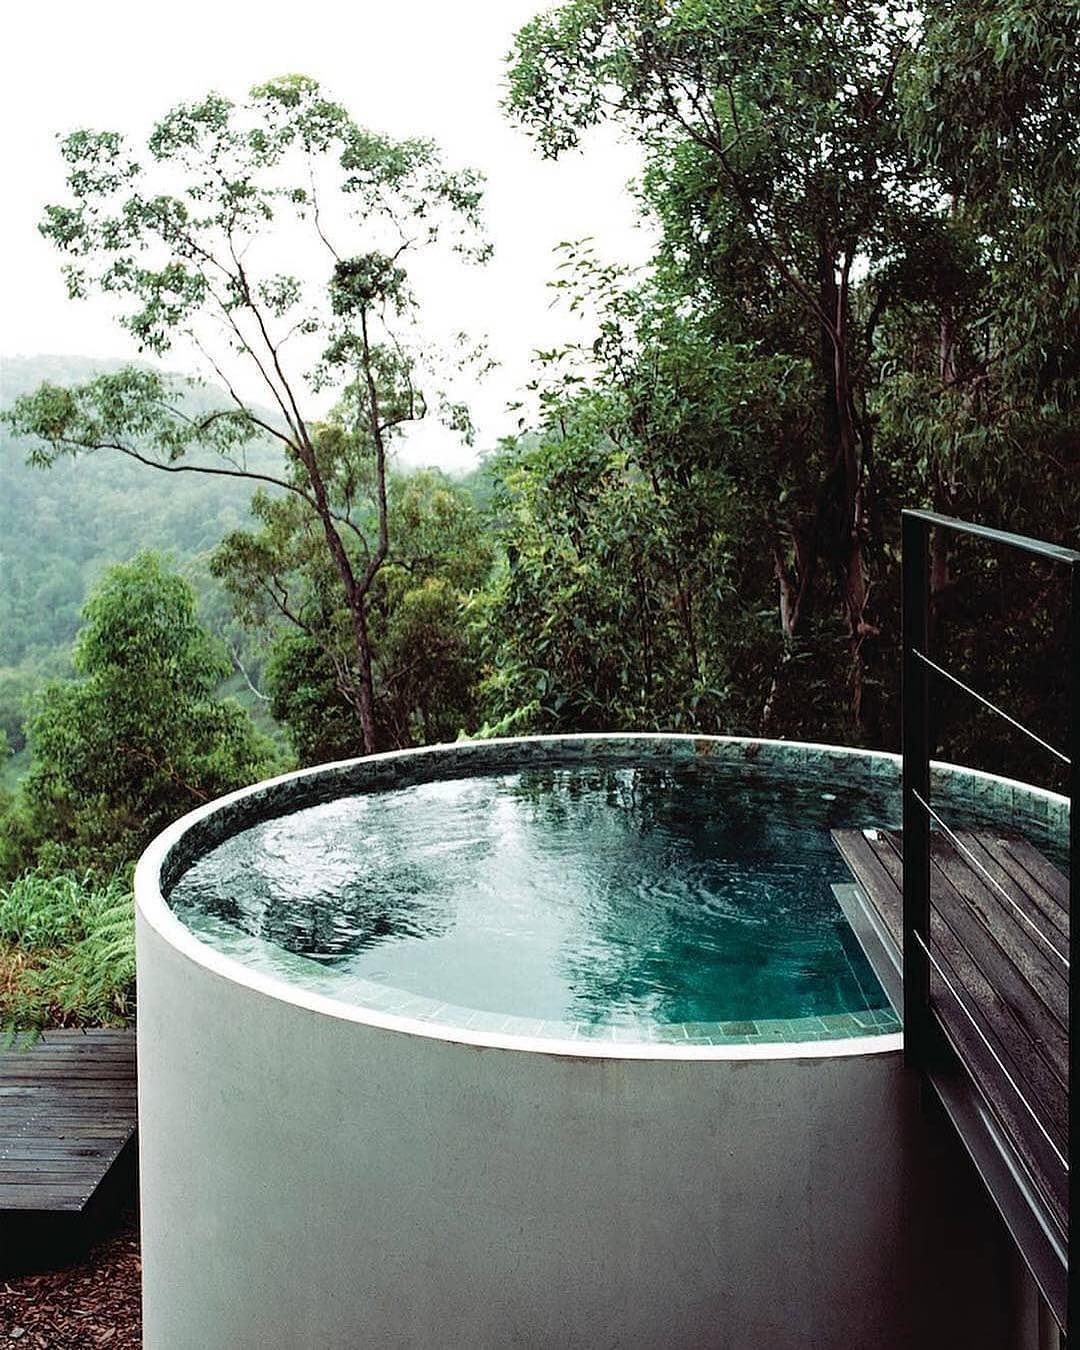 Plunge Pools - Plunge pools… enough said! These pools are popping up everywhere and we can't get enough of them. They are perfect for Phoenix and the perfect route when you don't have a lot of backyard space. Our favorite is the water tank turned plunge pool by Sparks Architects— genius!